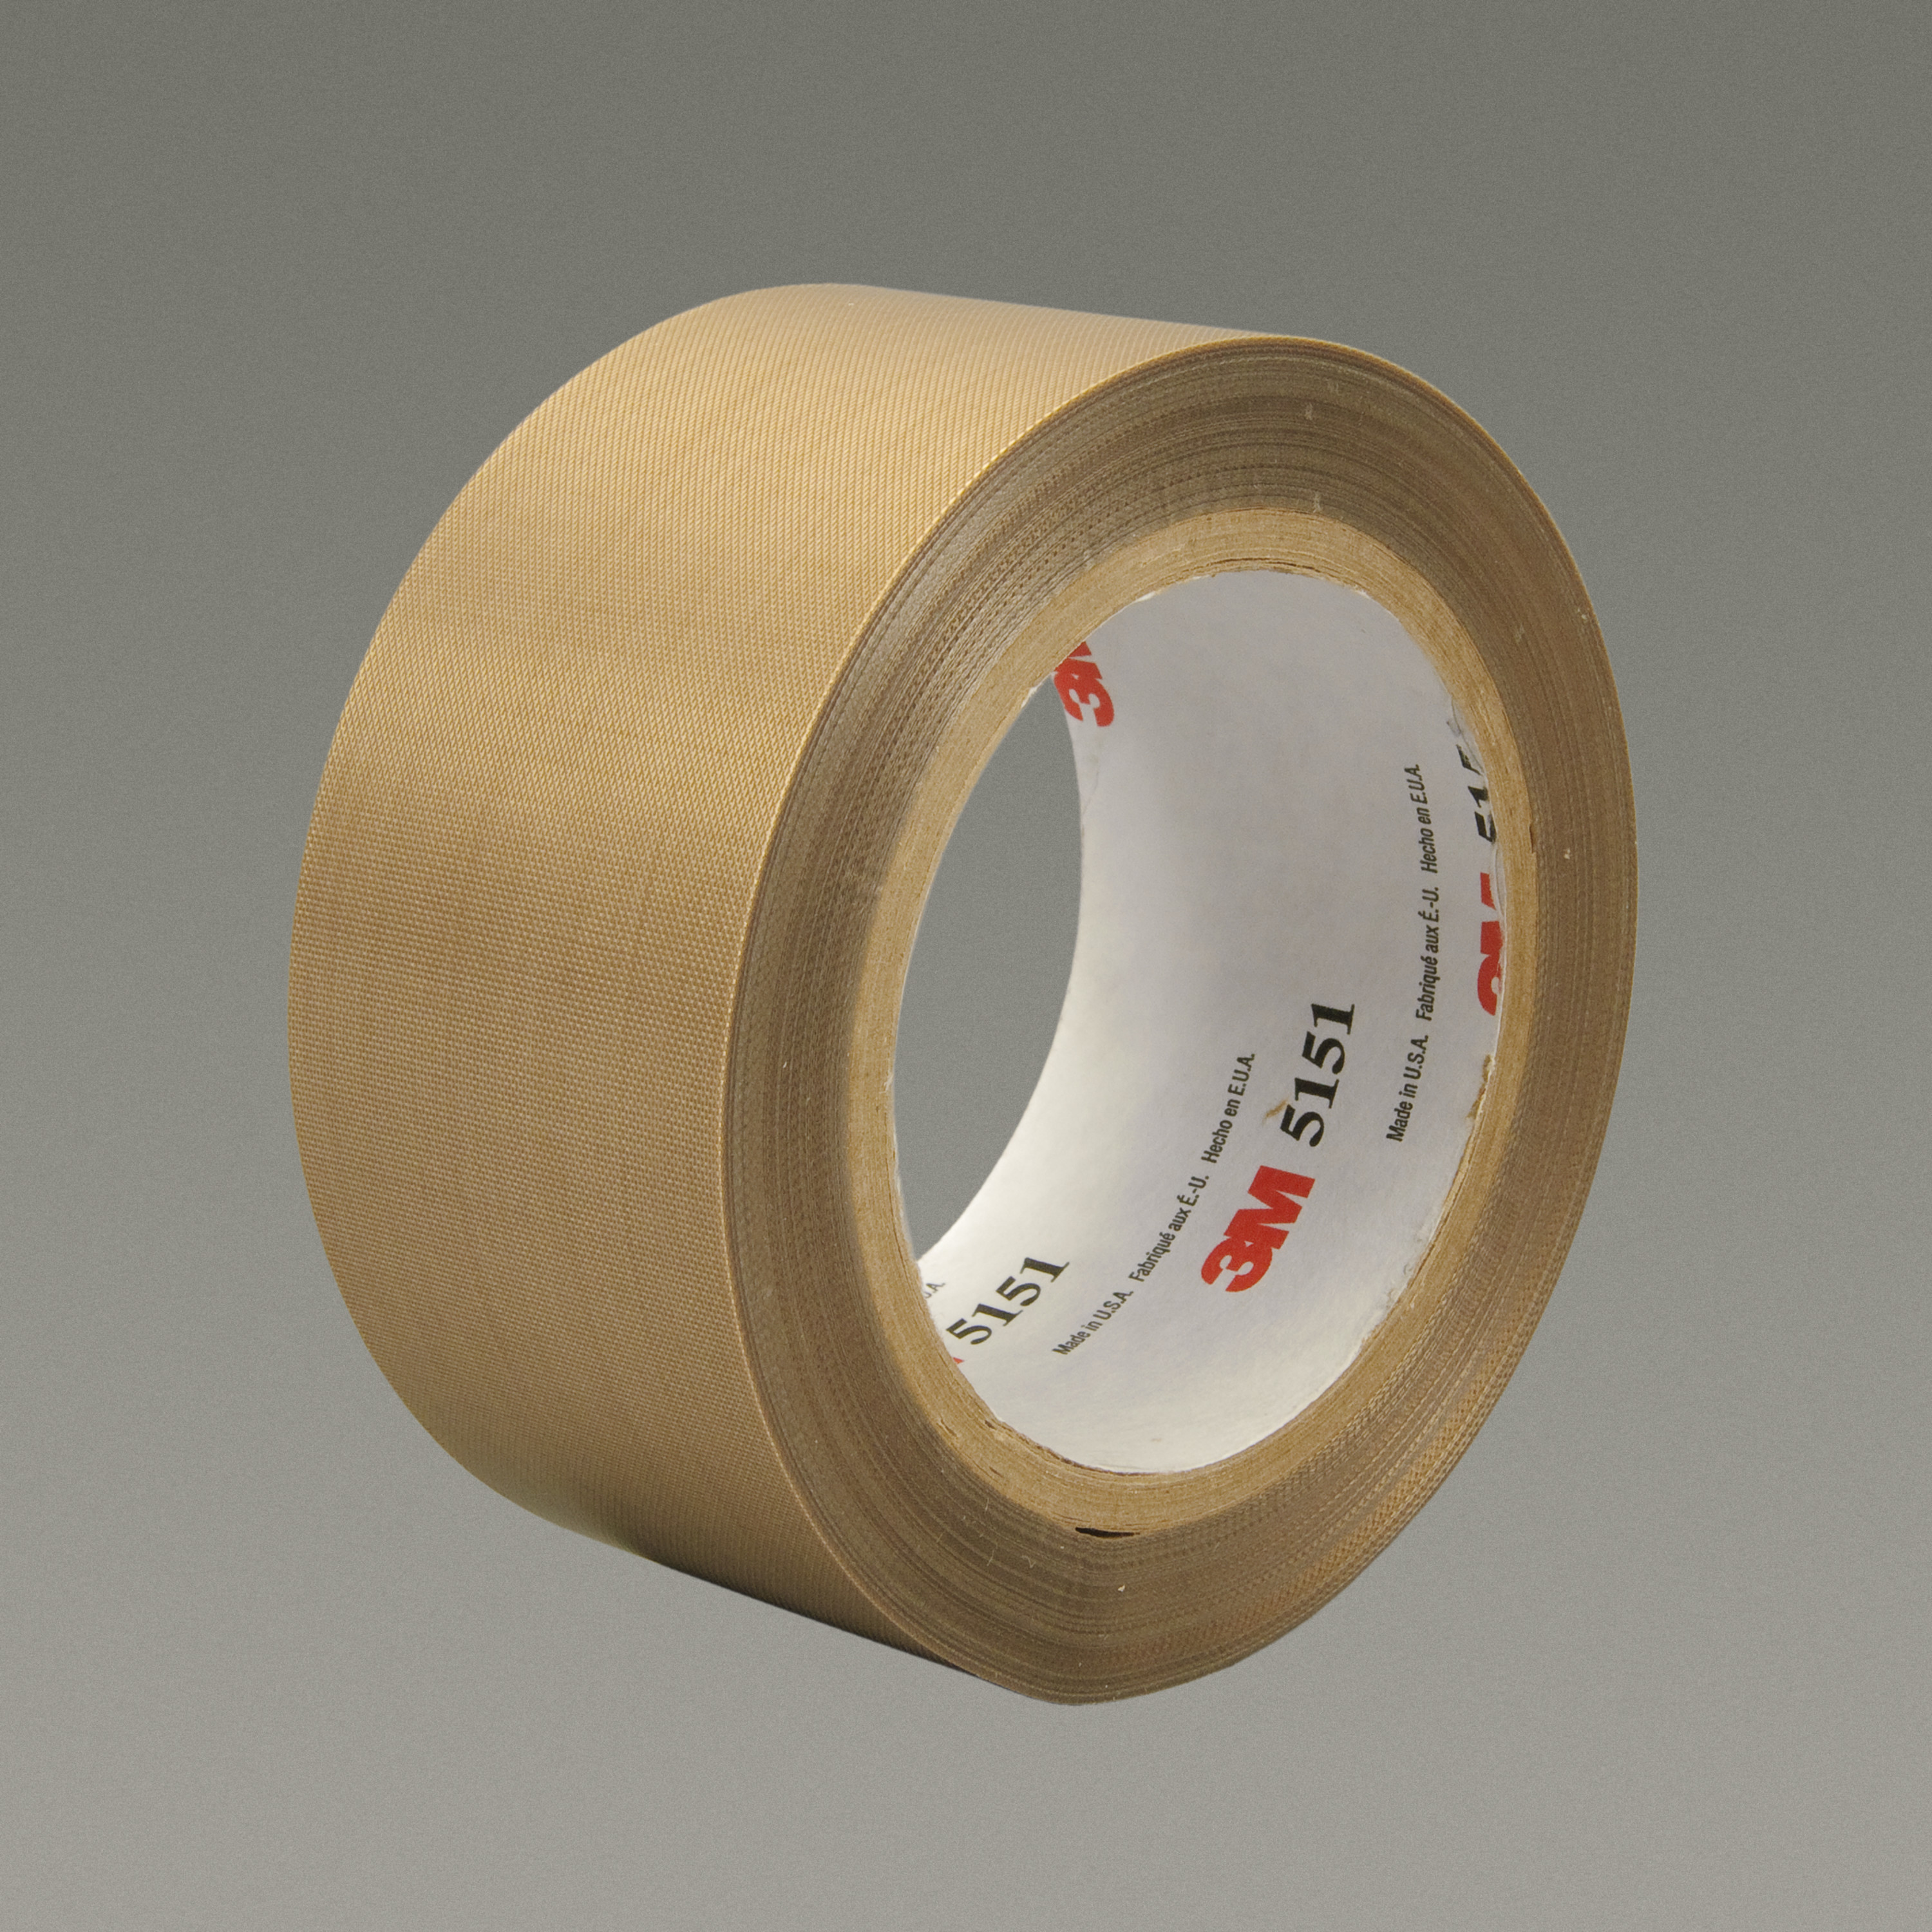 3M™ General Purpose PTFE Glass Cloth Tape 5151PL, Light Brown, 36 in x 36 yd, 5.3 mil, 1 roll per case